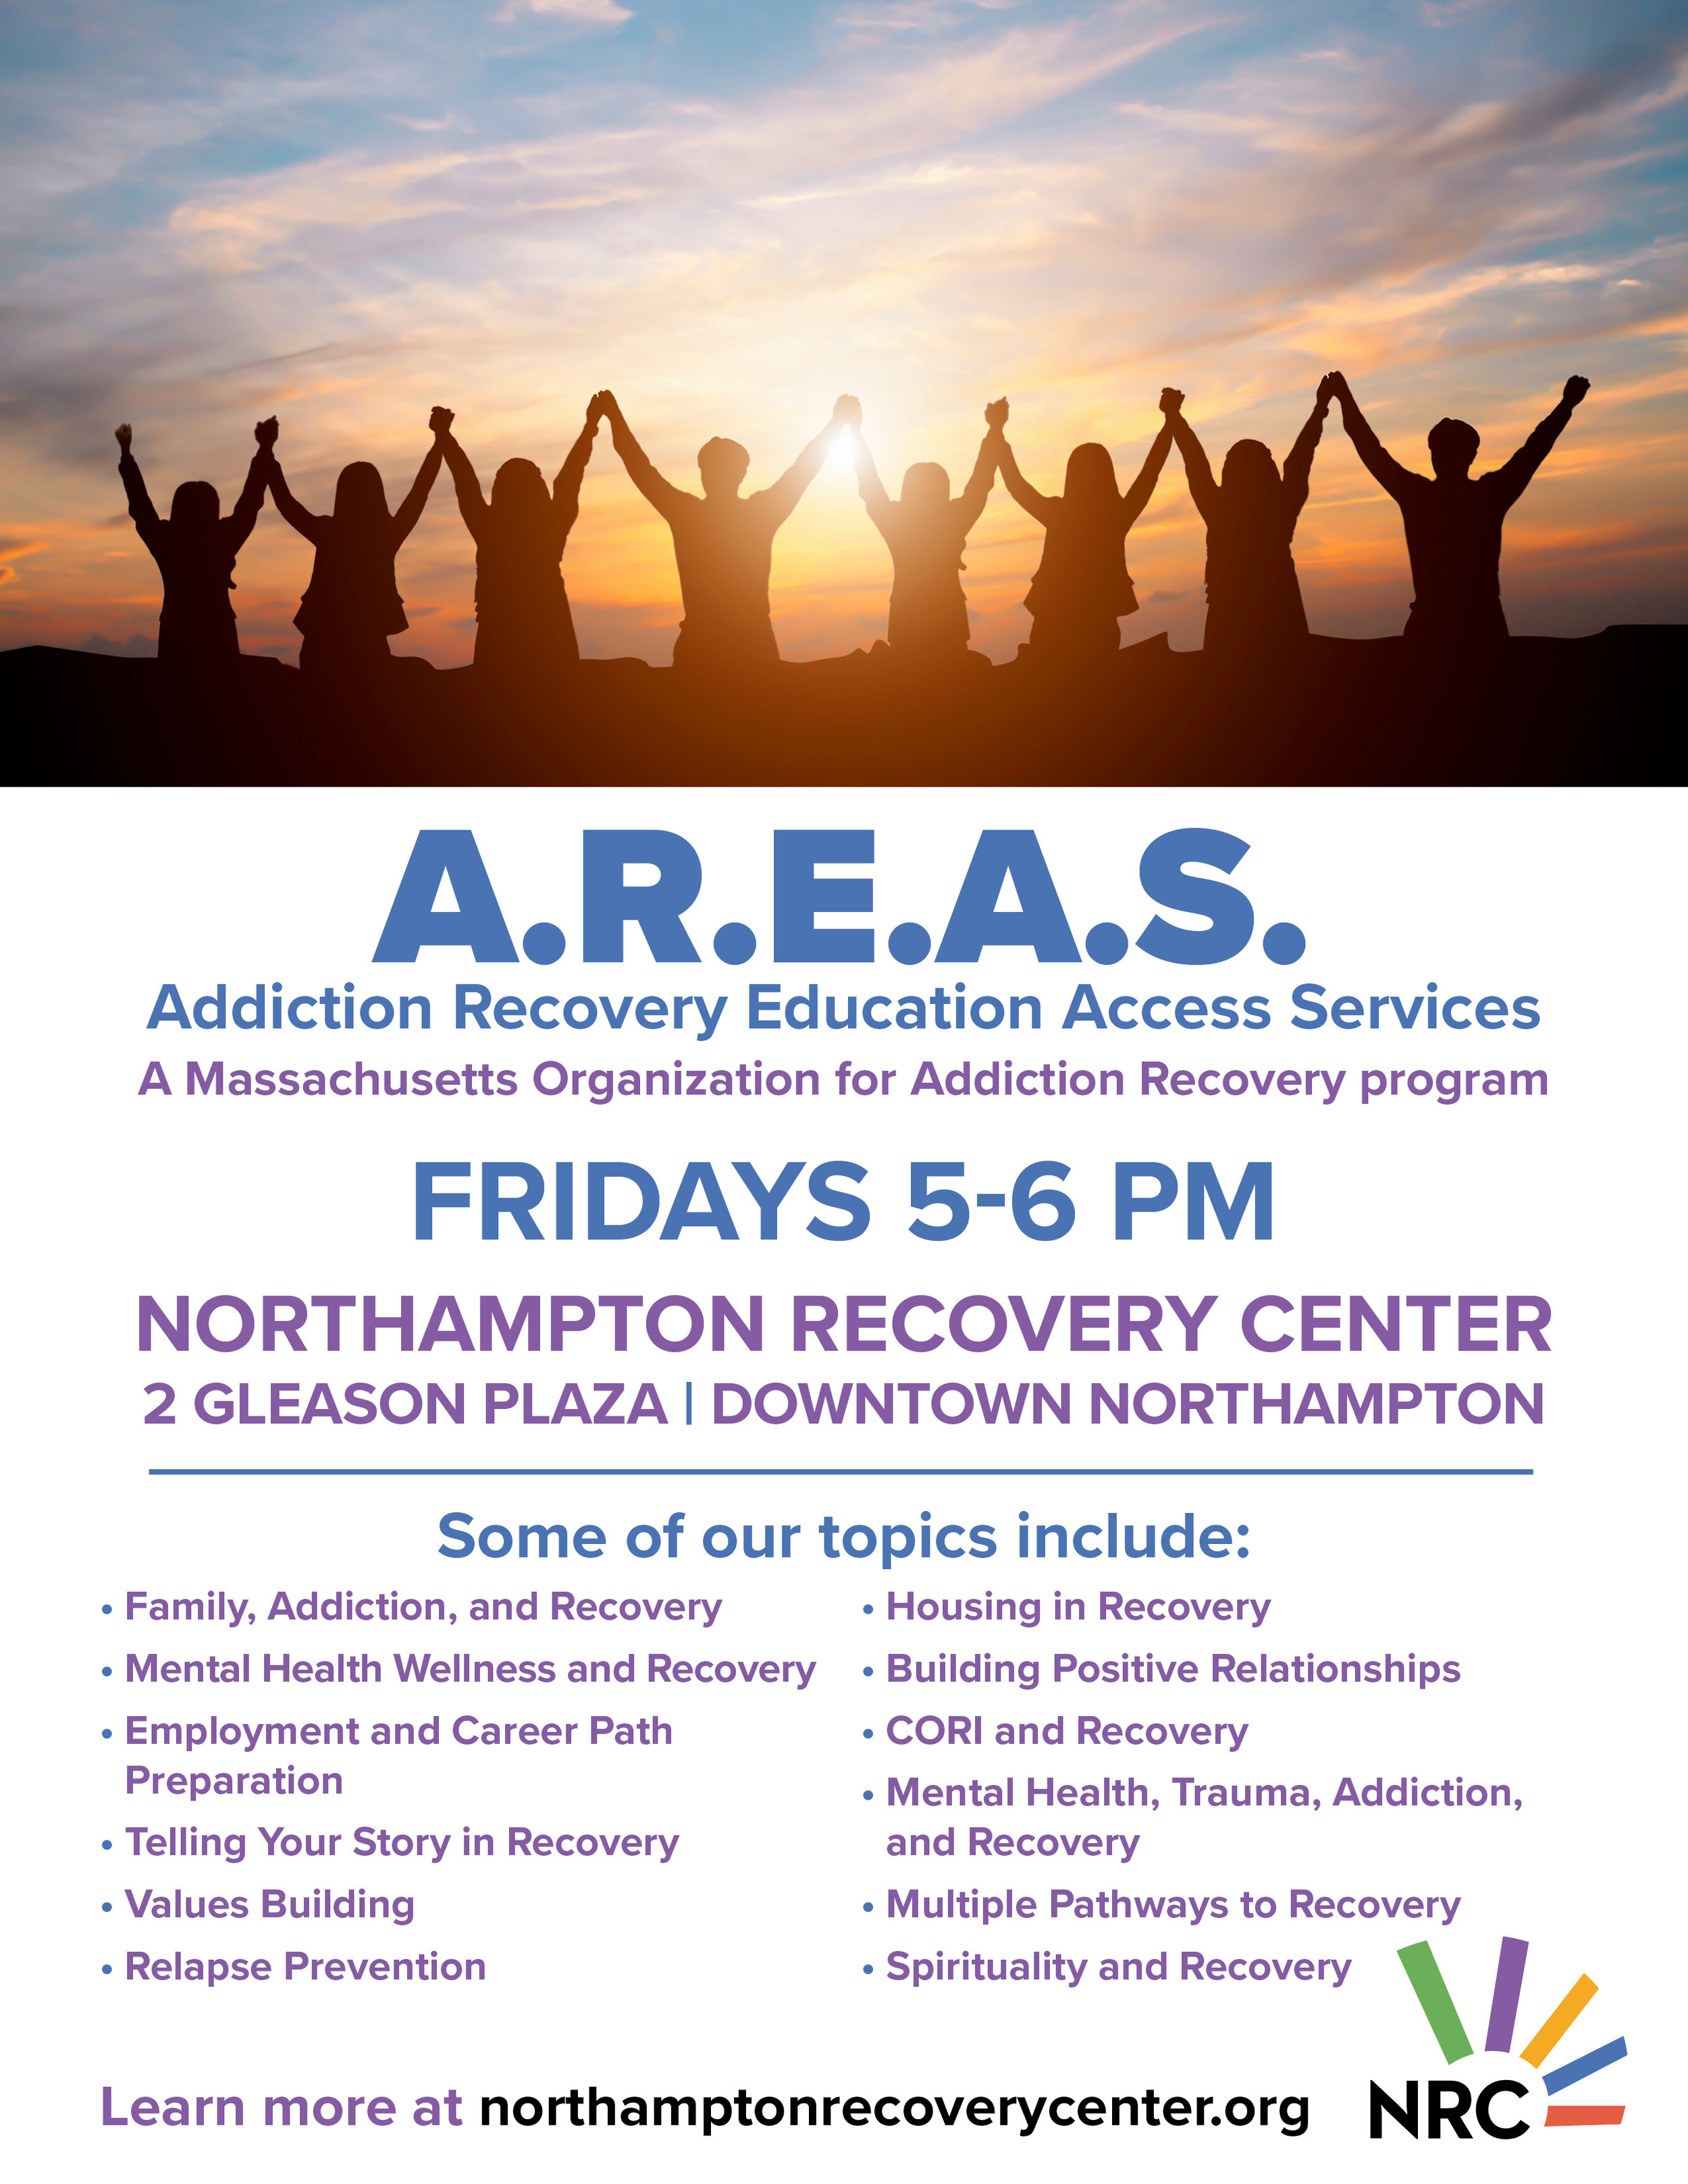 FREE recovery-based curriculum in a group discussion format  Peer-to-peer facillitated  Topics chosen by group participants  Help solving practical problems  Strengthen recovery coping & relapse prevention skills  Information, resources & decision-making support  Leadership development  Opportunities for involvement with MOAR (Massachusetts Organization for Addiction Recovery) in a personal way